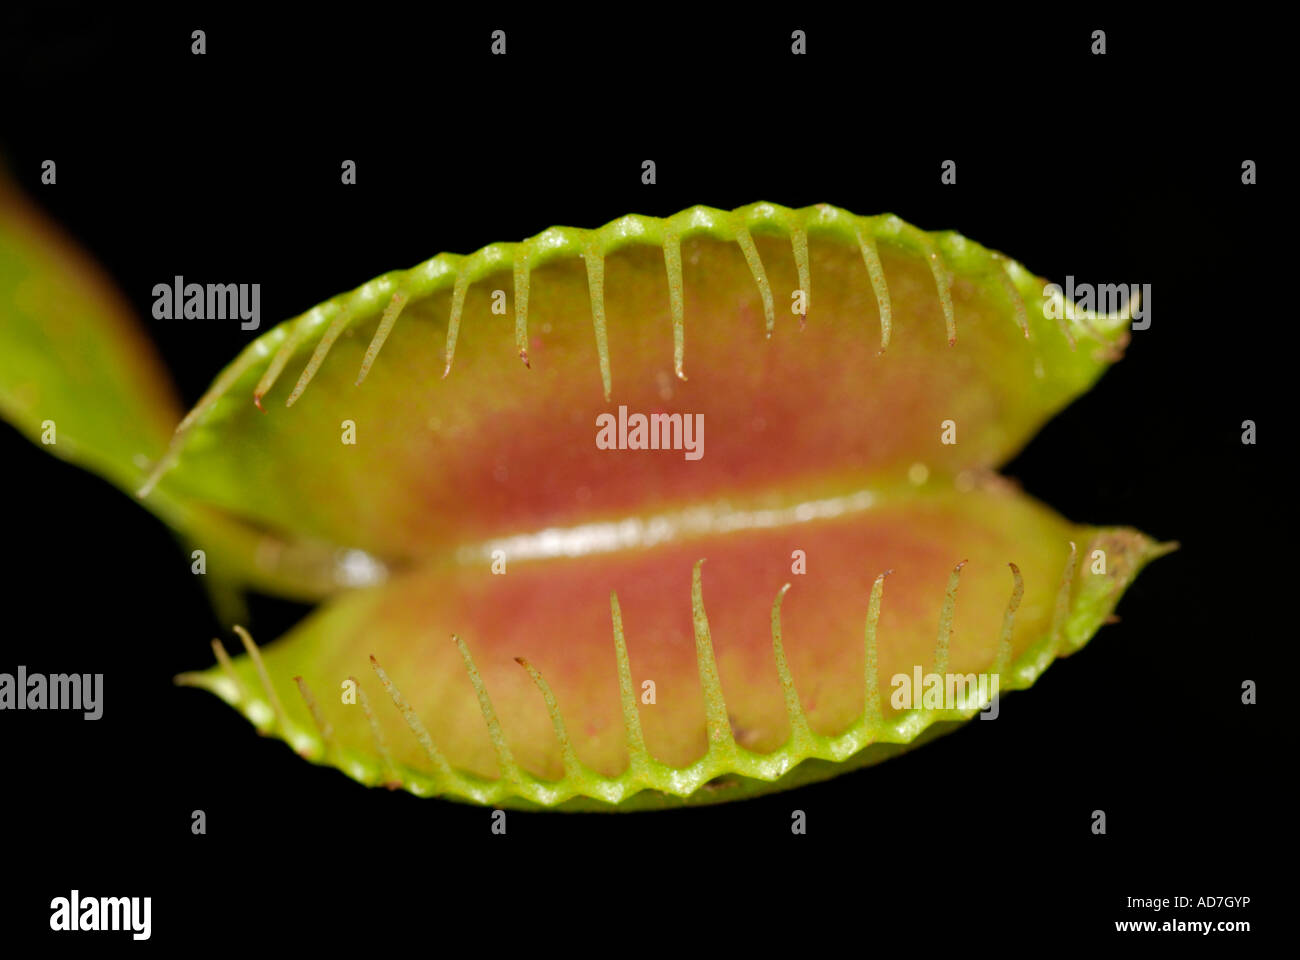 Single Venus flytrap, Dionaea muscipula, open, against black. Carnivorous insectivorous plant. - Stock Image